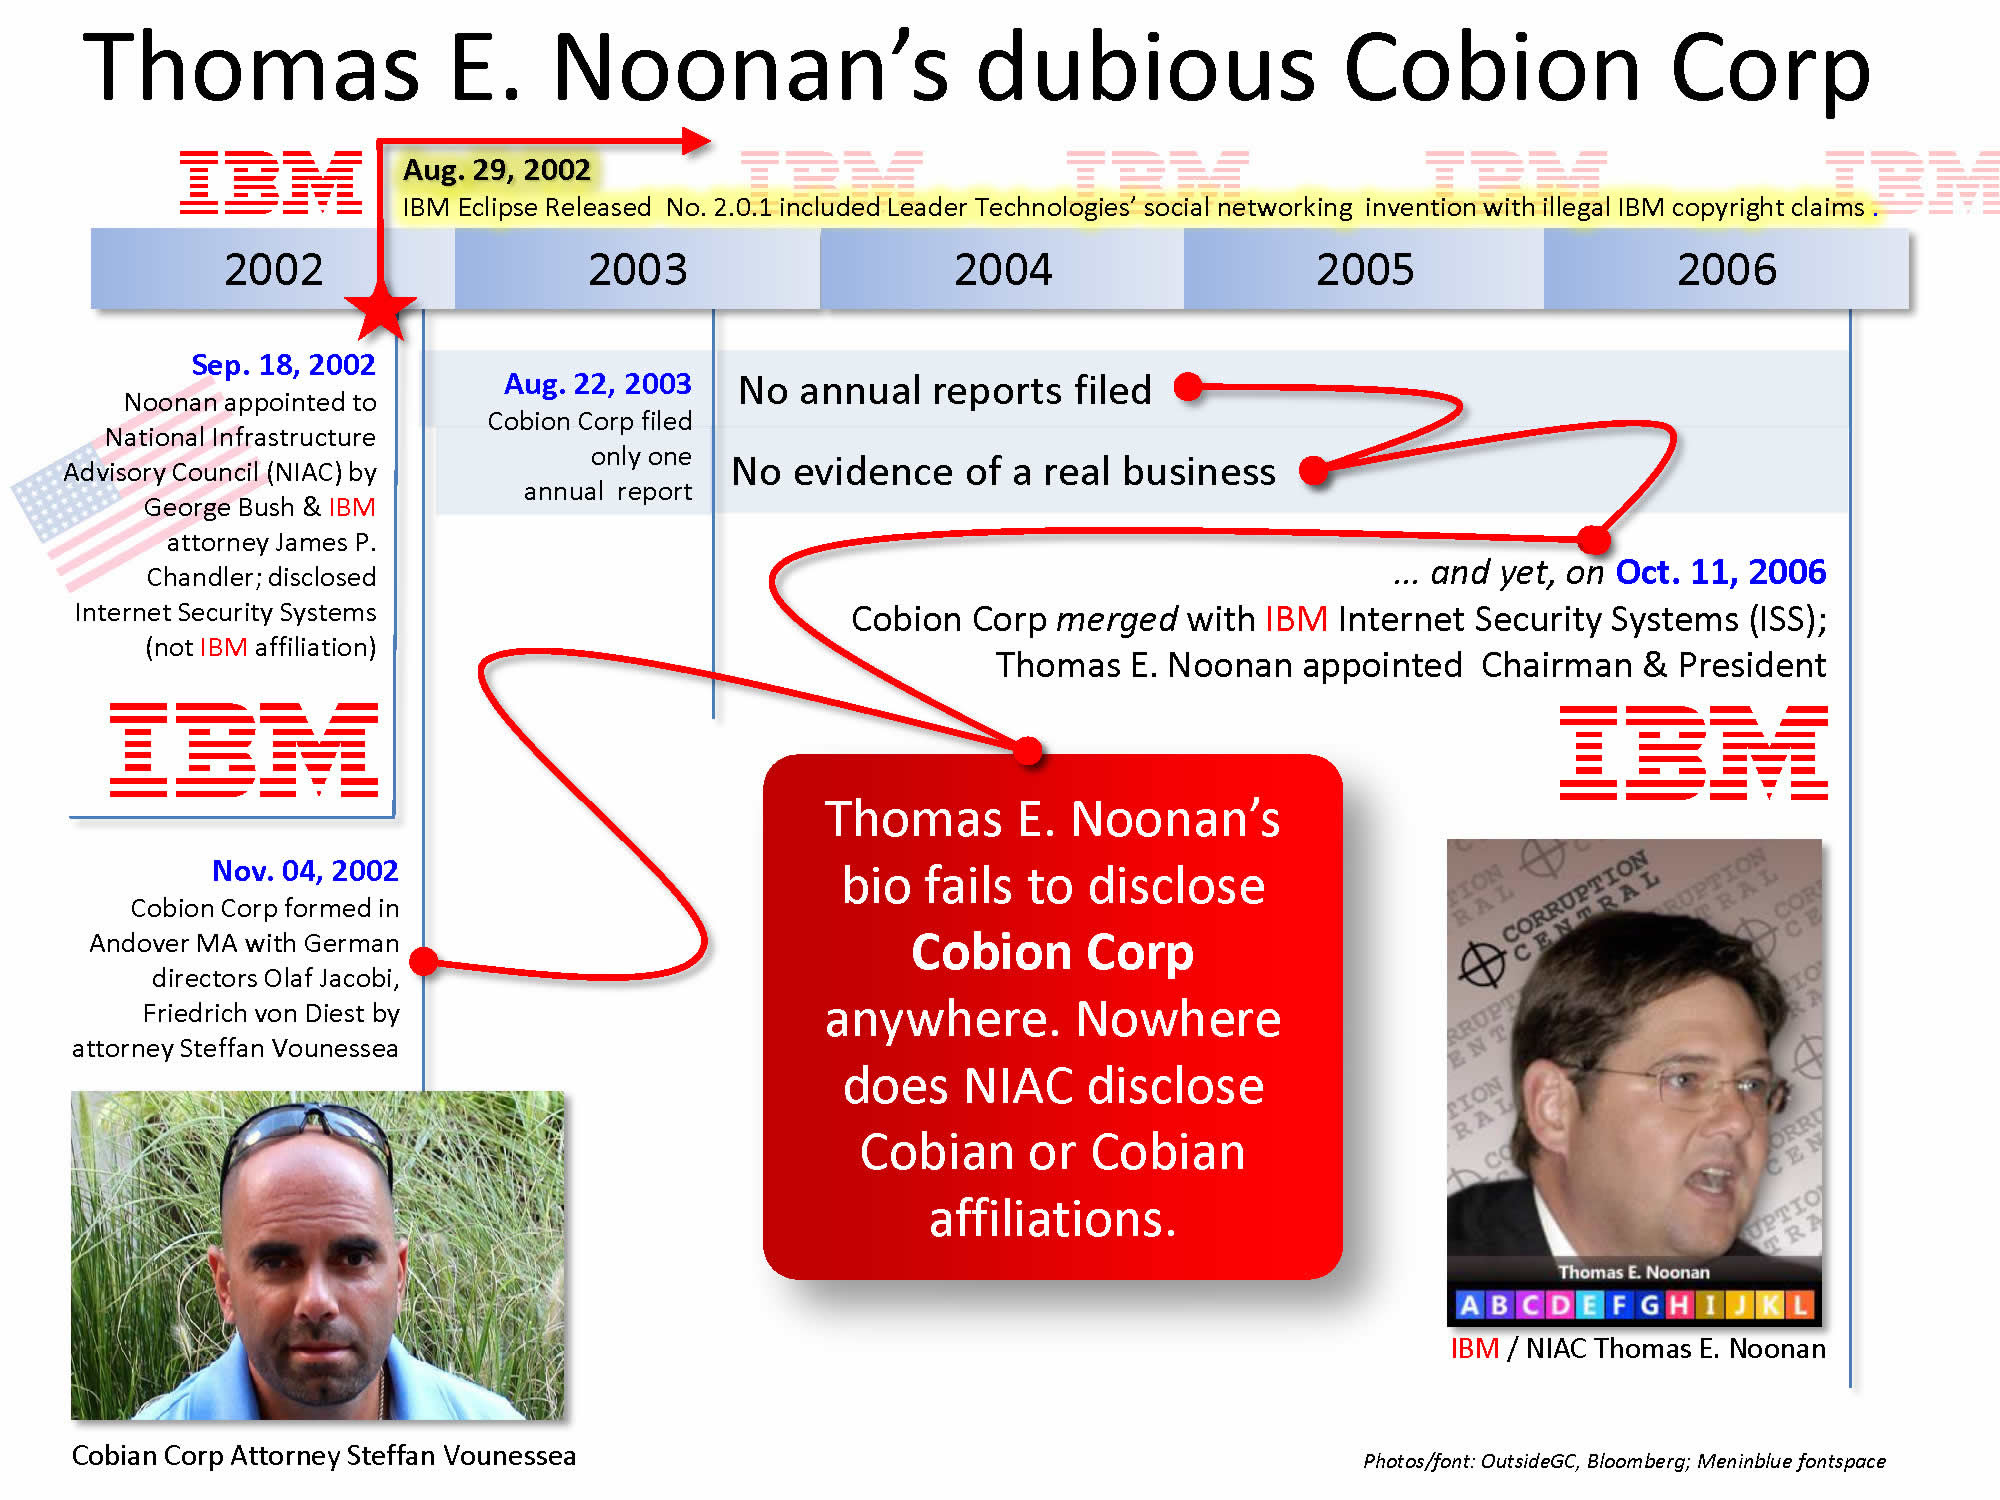 Thomas E. Noonan's undisclosed associations among himself, IBM and the National Infrastructure Assurance Council (NAIC).